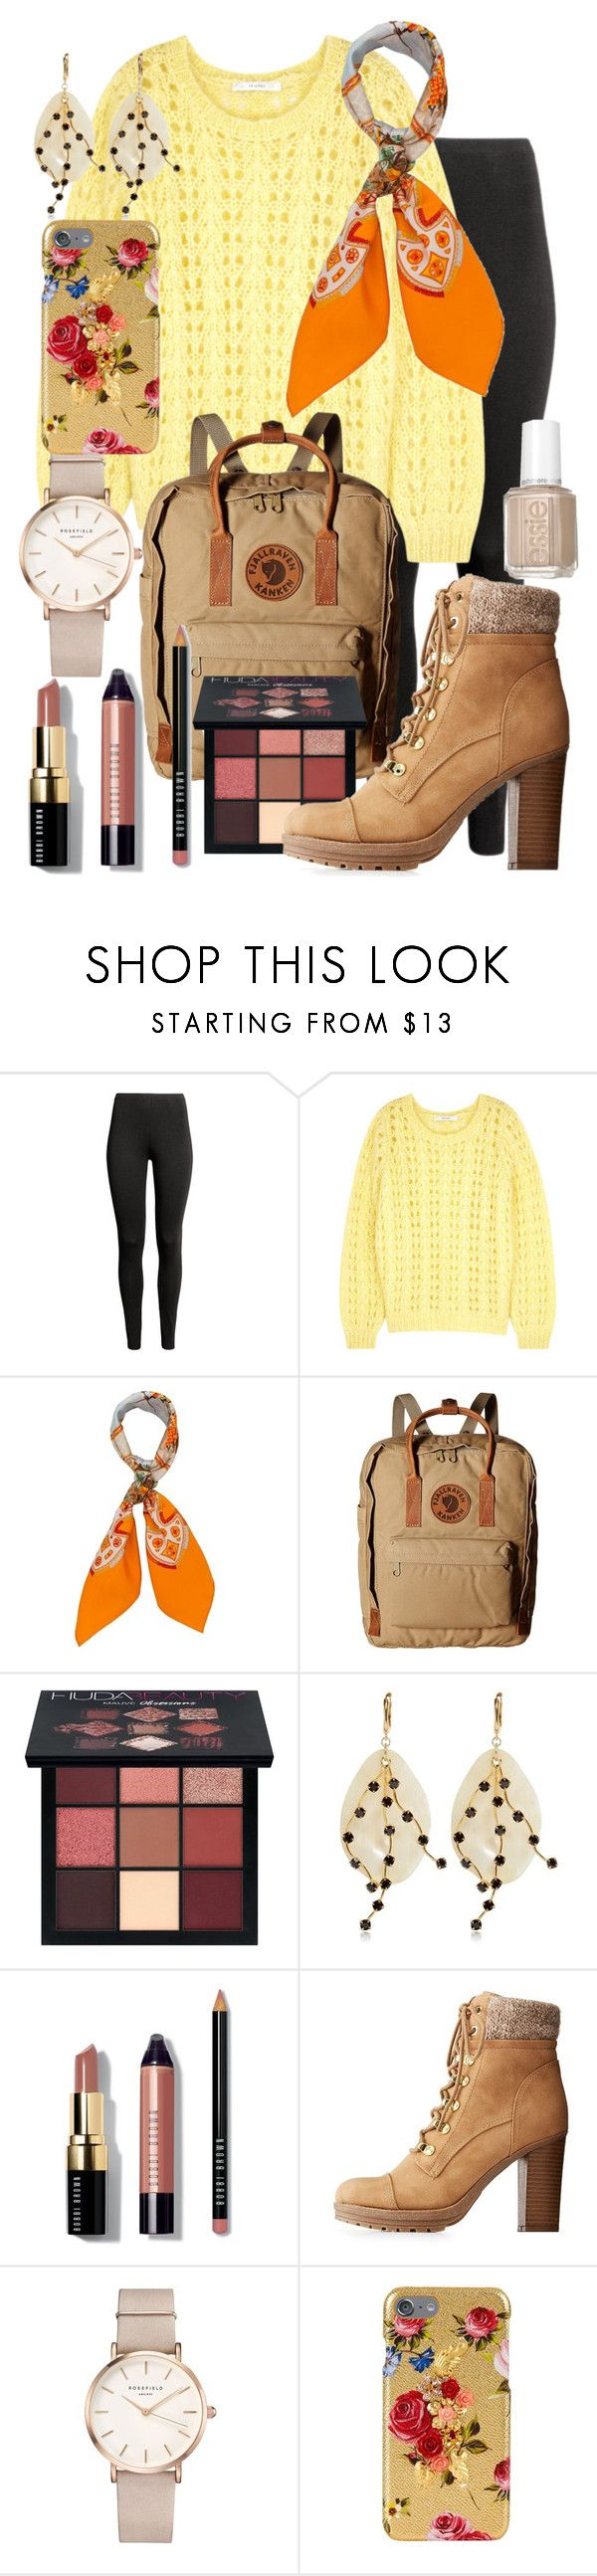 """""""Russell {Up} Inspired Outfit"""" by the-disney-outfits ❤ liked on Polyvore featuring Gestuz, Hermès, Fjällräven, Huda Beauty, Marni, Bobbi Brown Cosmetics, Charlotte Russe, ROSEFIELD, Dolce&Gabbana and Essie"""